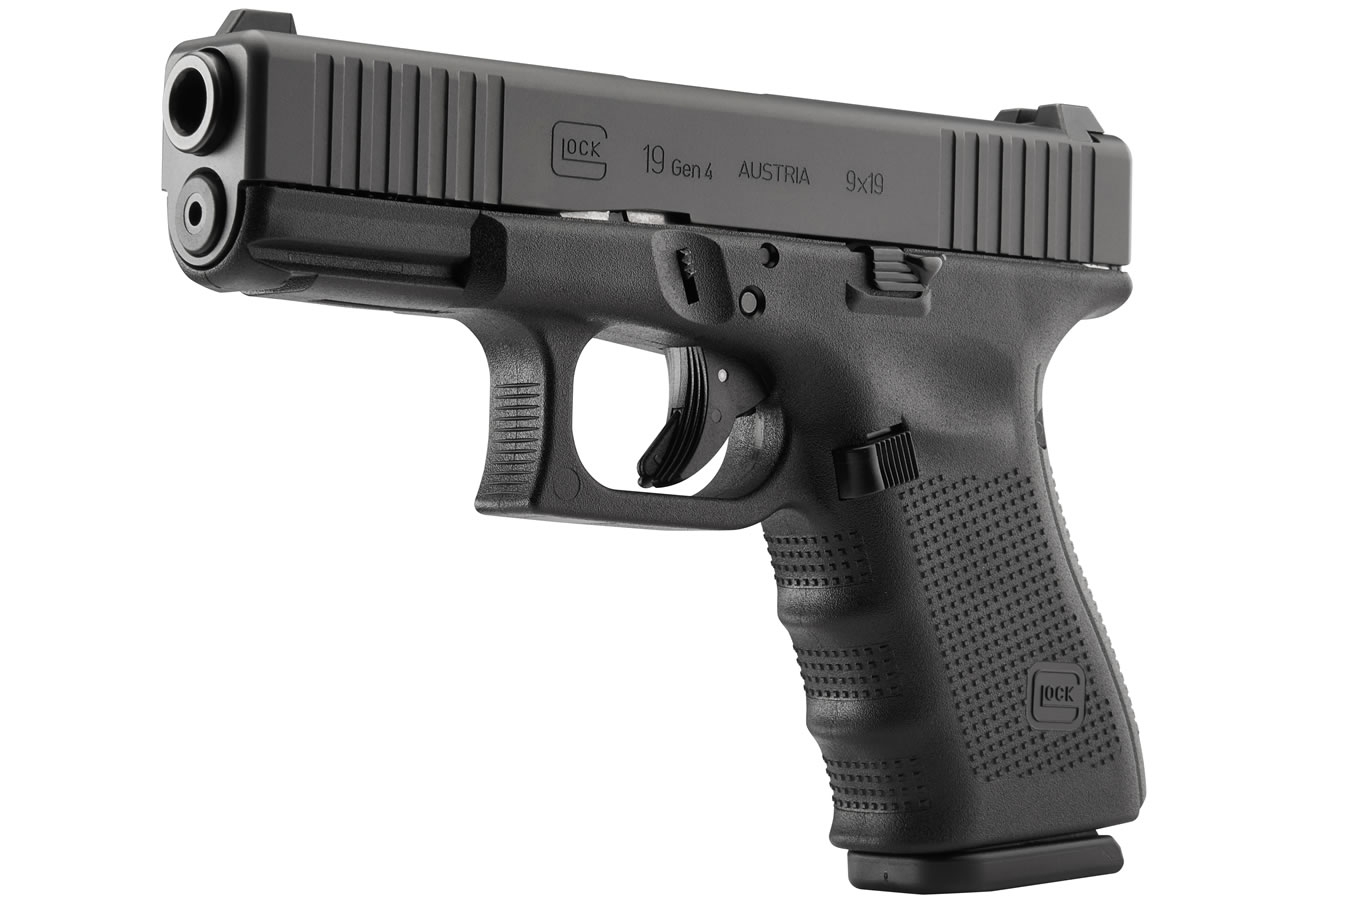 glock 19 gen 4 owners manual